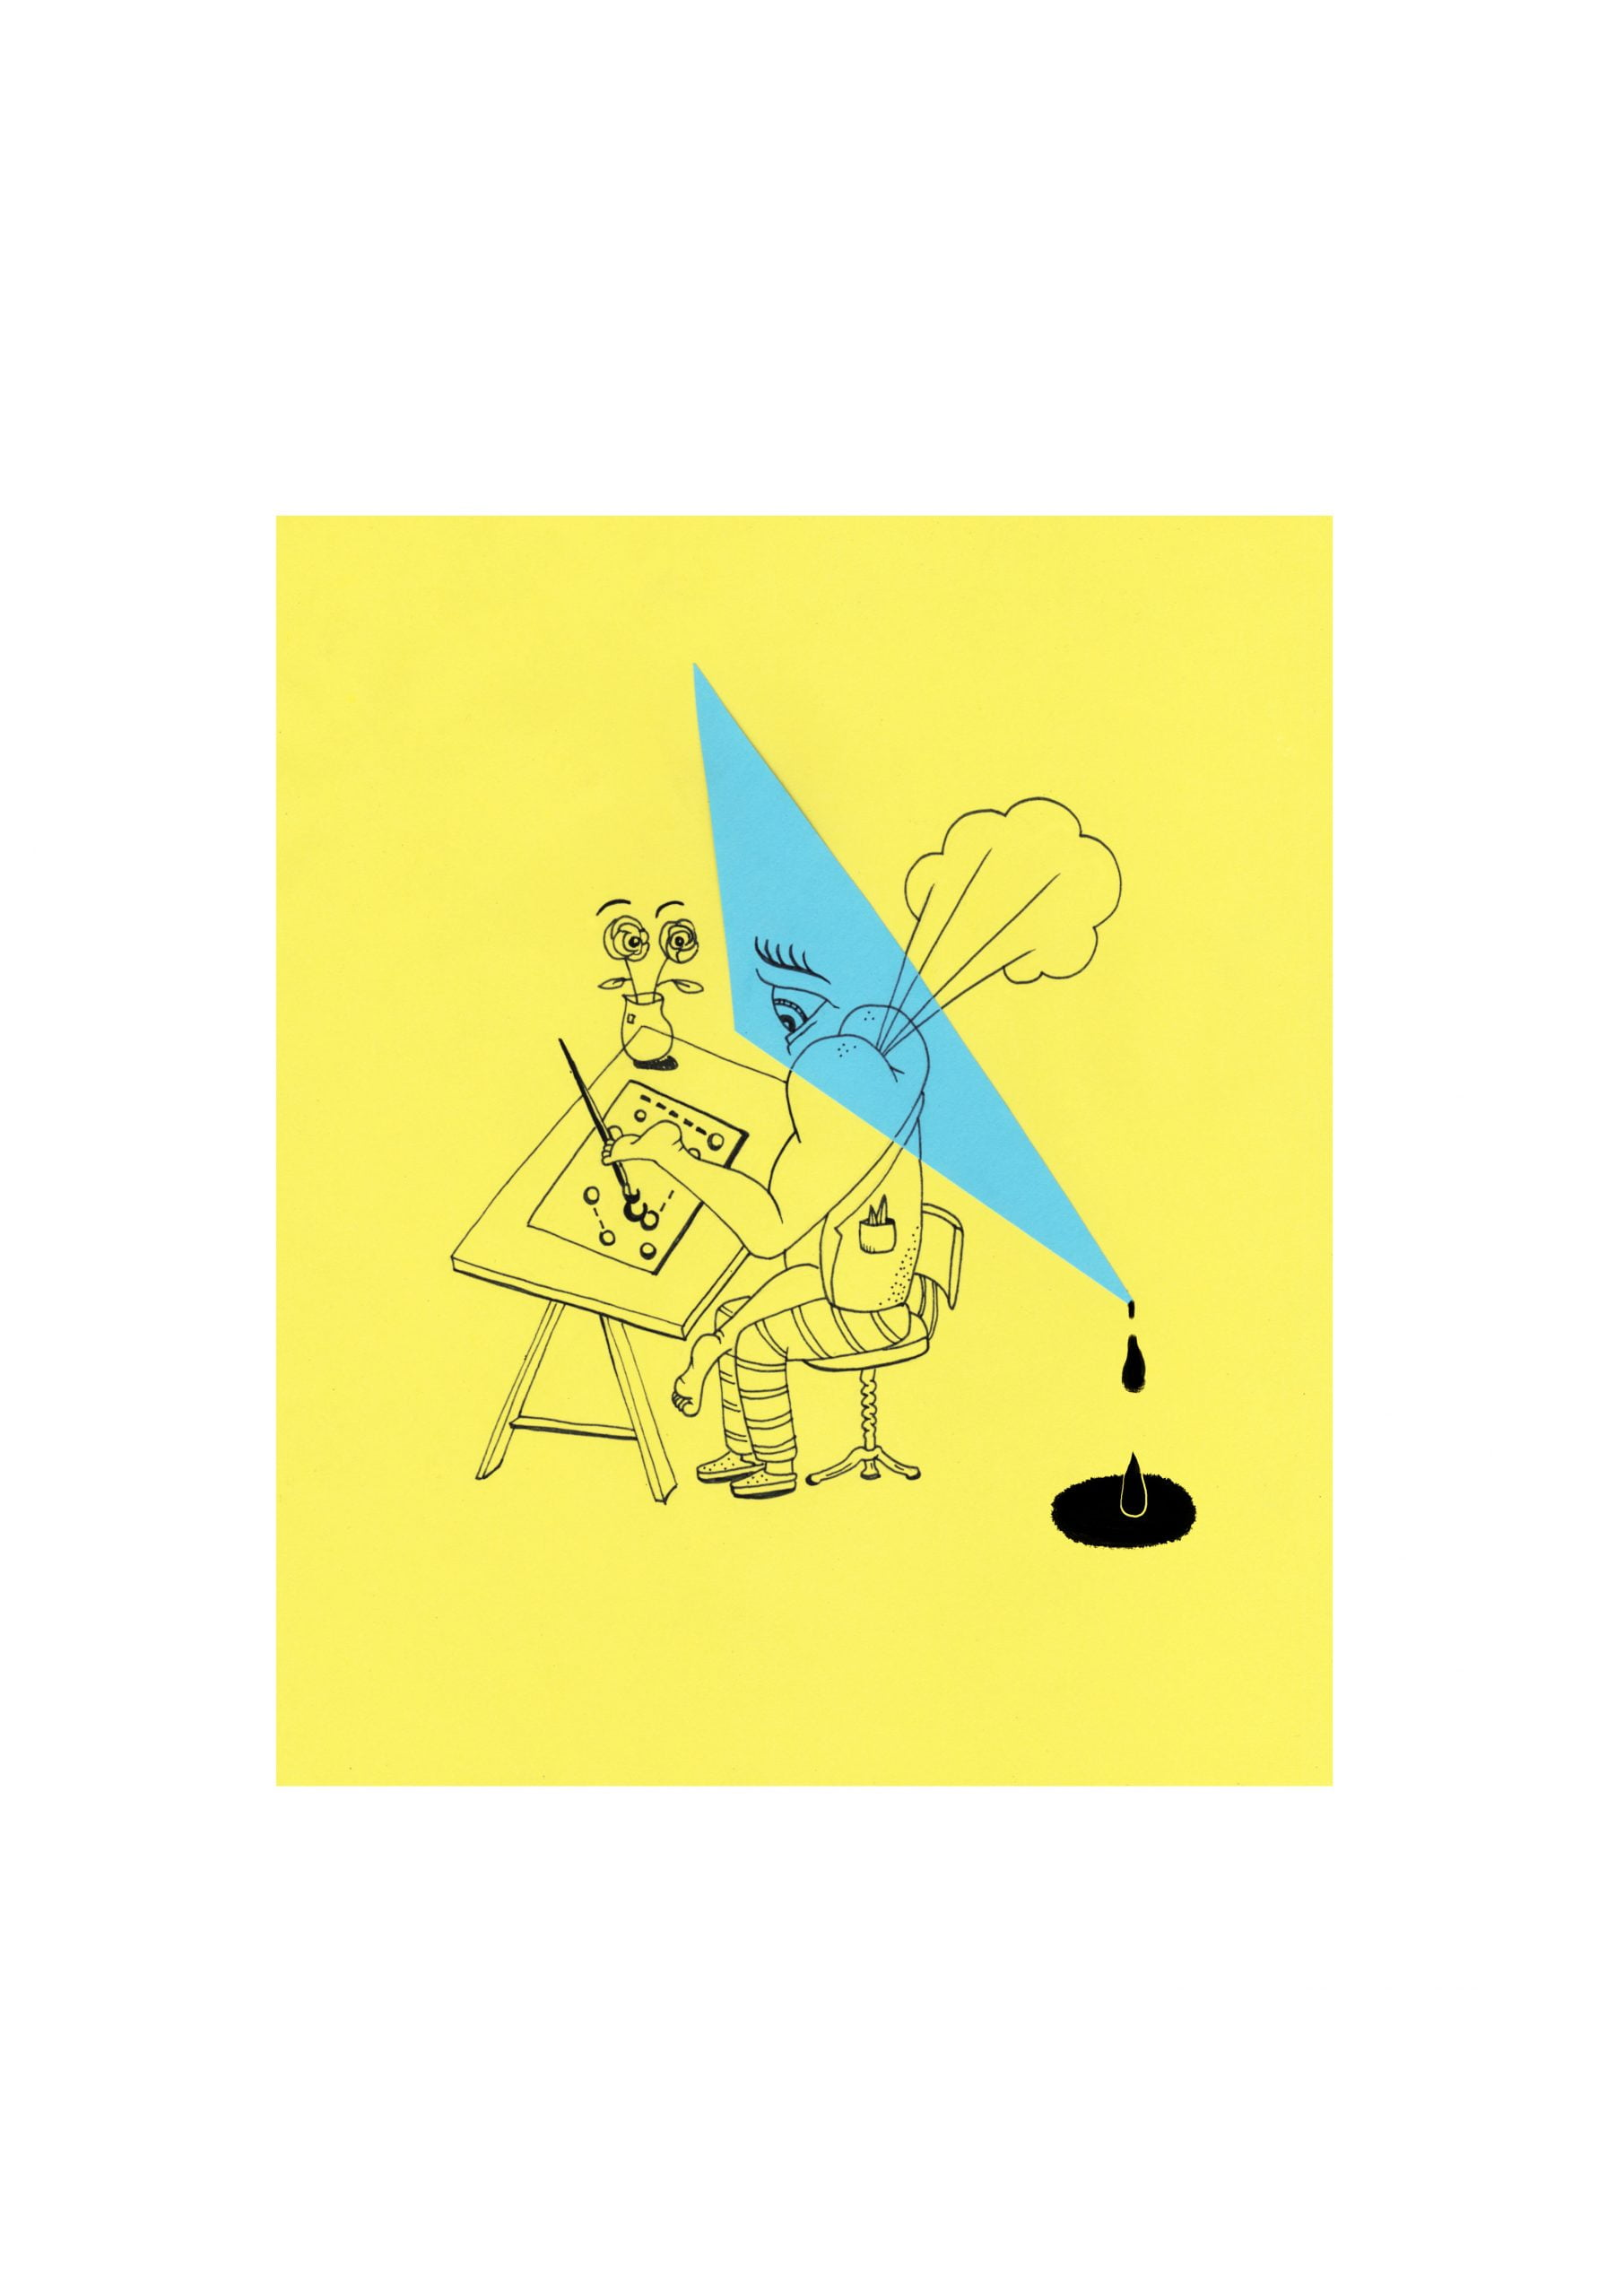 A portrait drawing in a yellow square of a figure with legs instead of arms sits painting at a desk. A light blue triangle overlays on the figure and drips a black liquid from its lowest point into a hole in the floor. A white background frames the drawing.